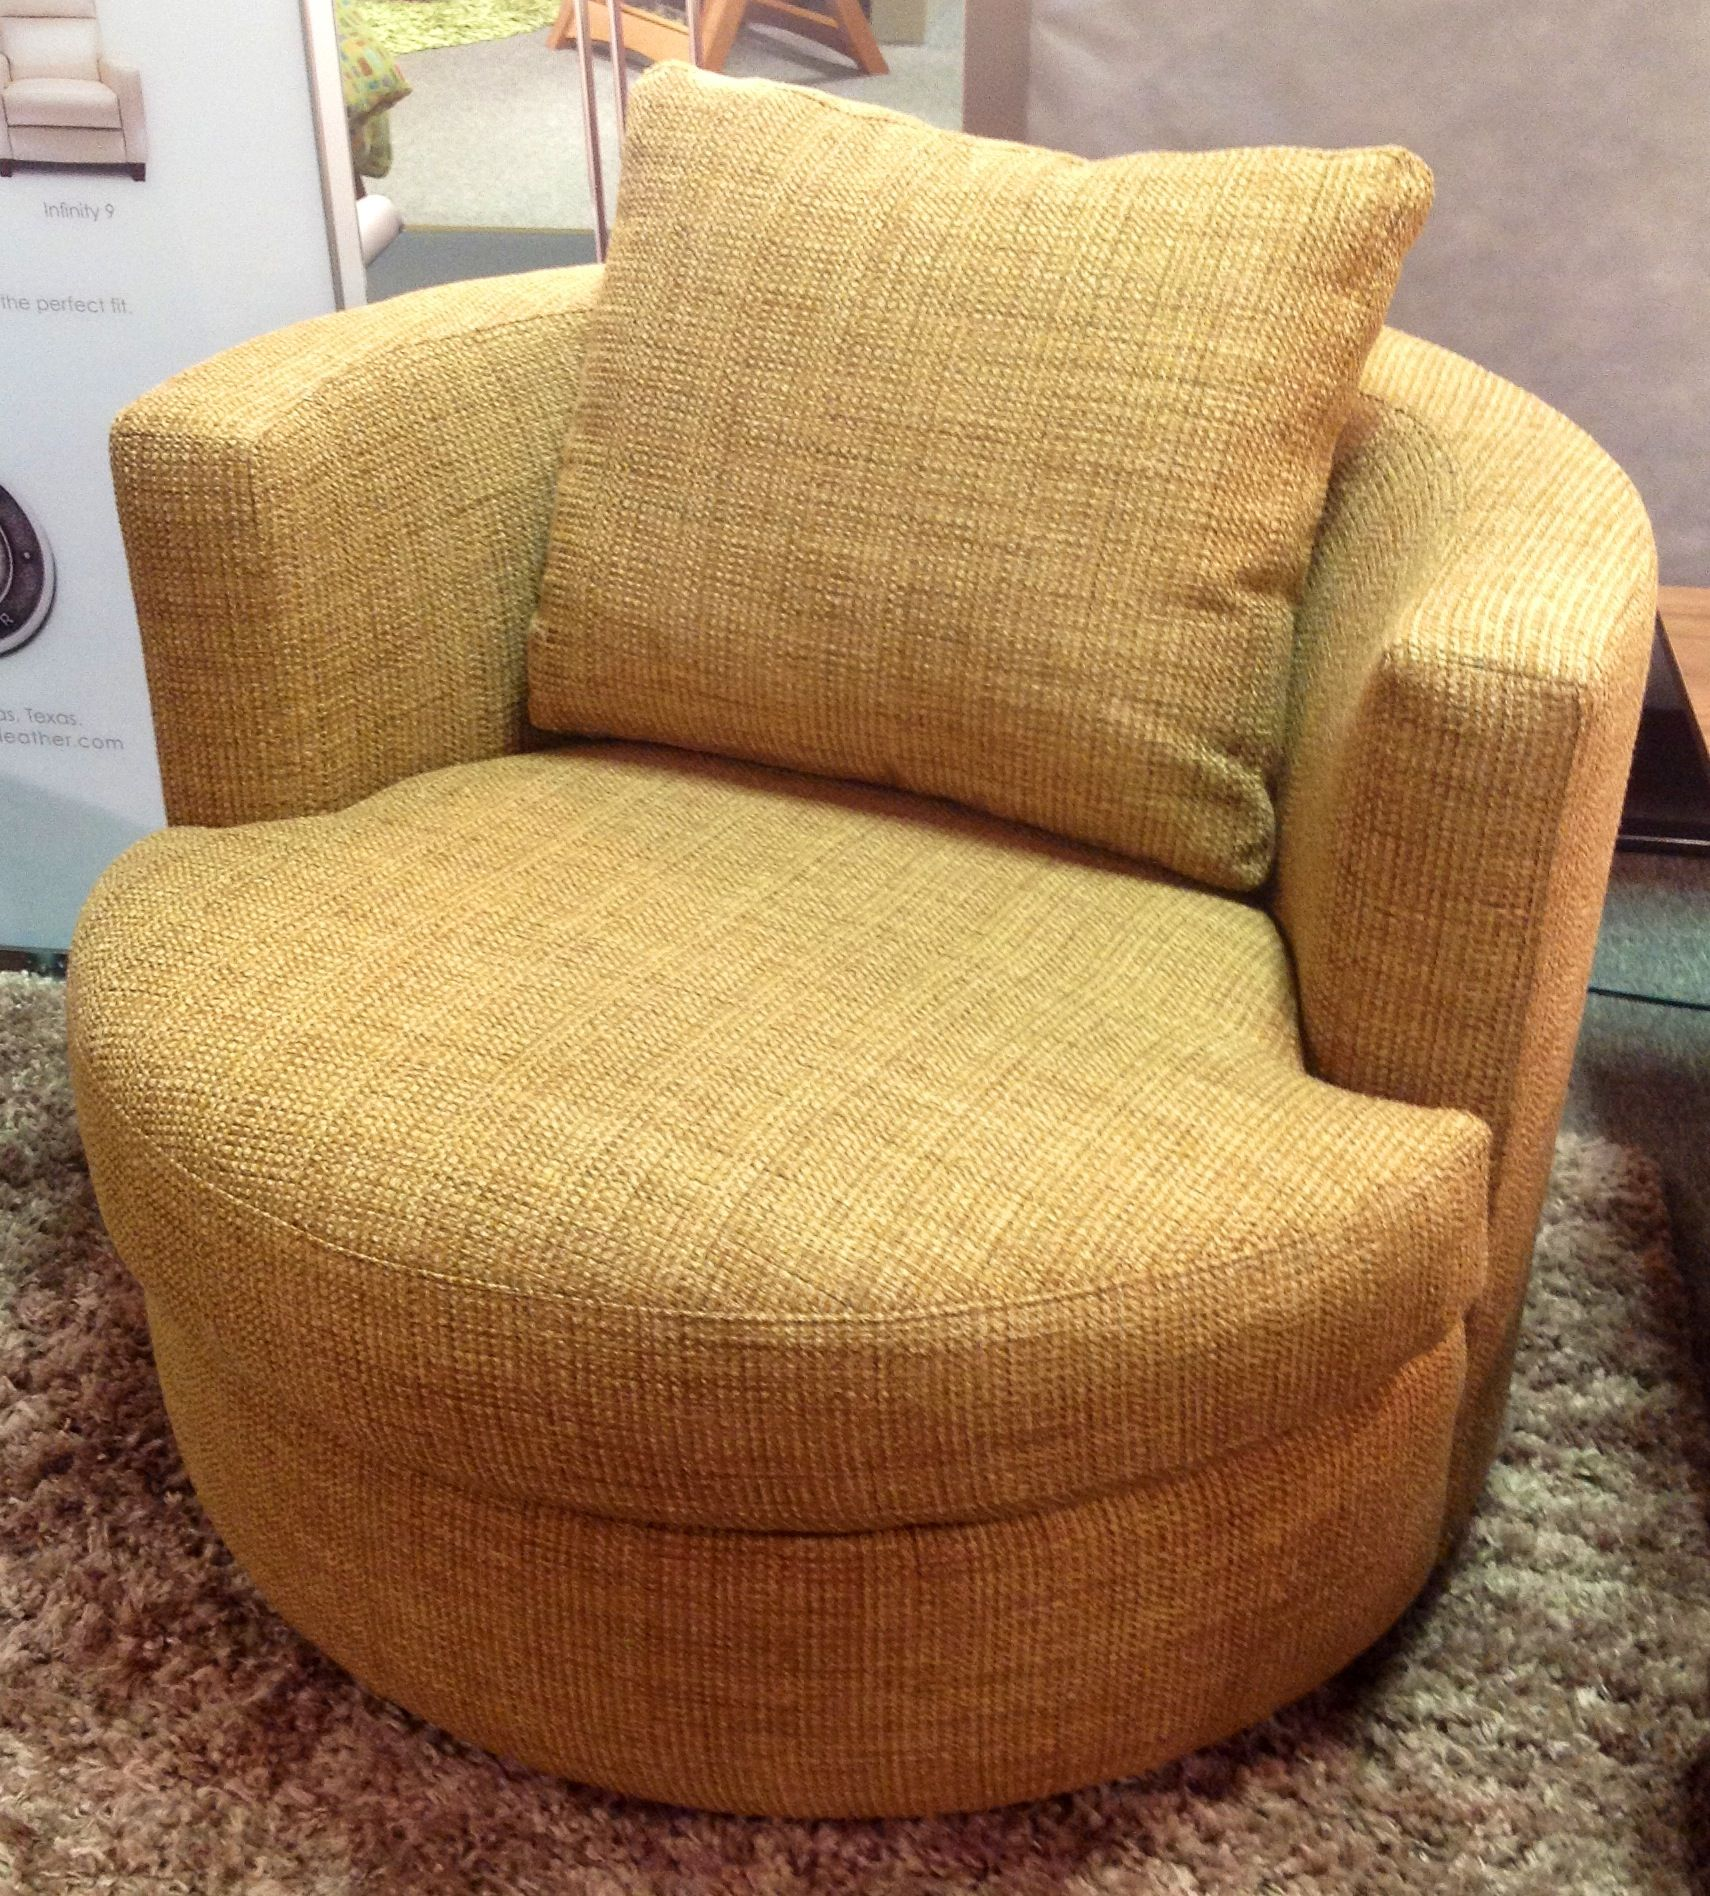 Living Room Furniture Made In The Usa Emma Swivel Chair By American Leather Tightrope Pecan Made In